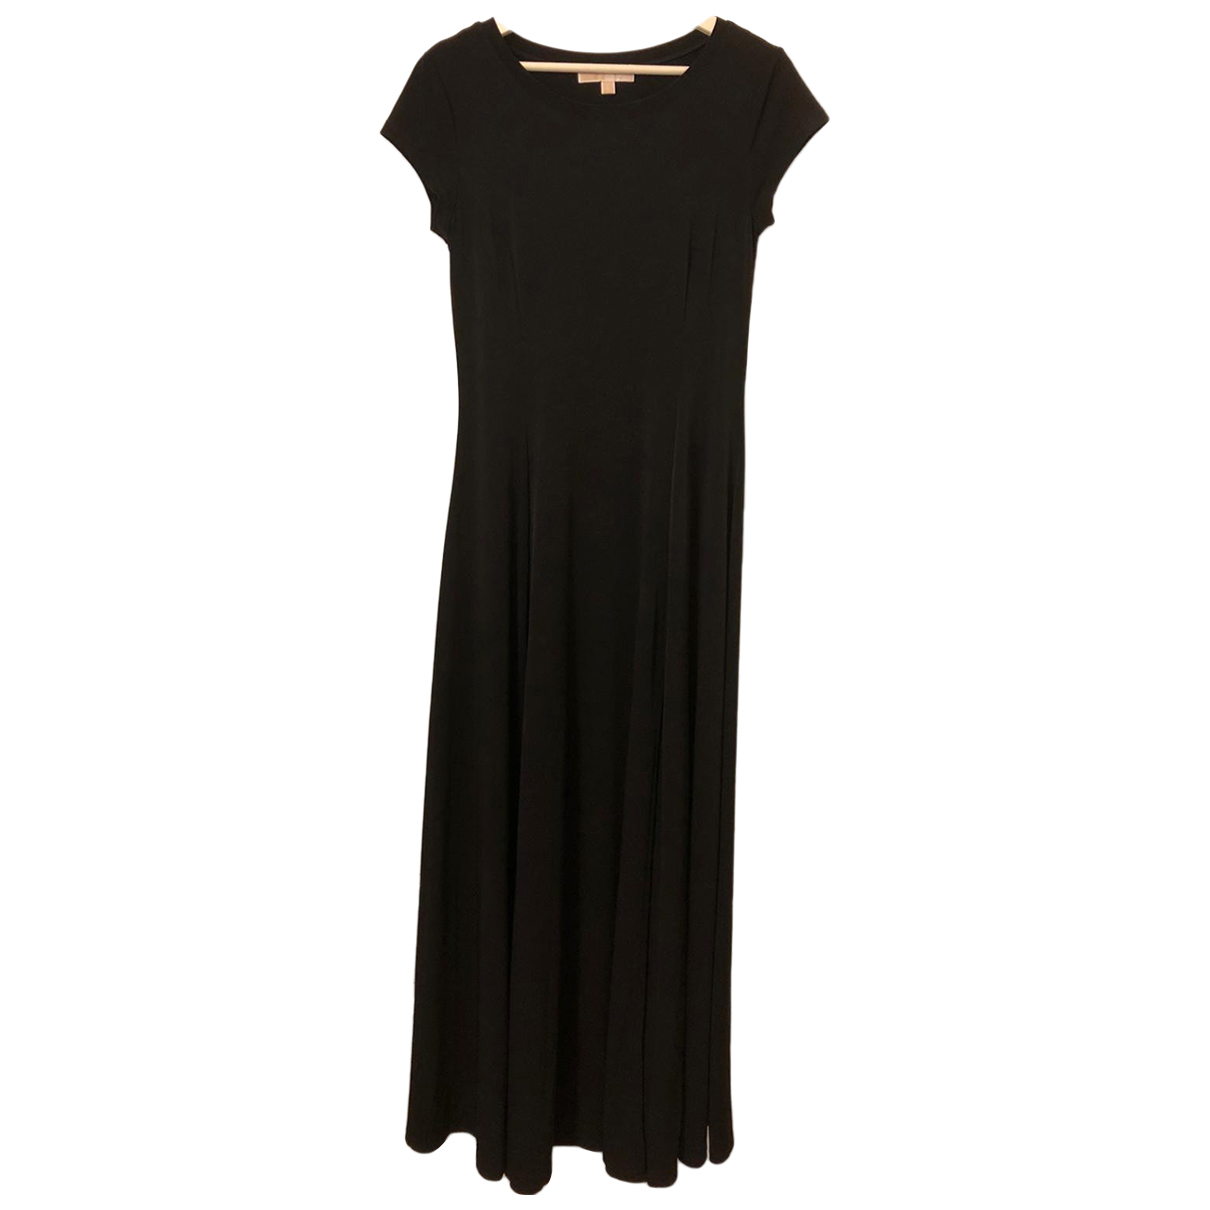 Michael Kors N Black dress for Women M International